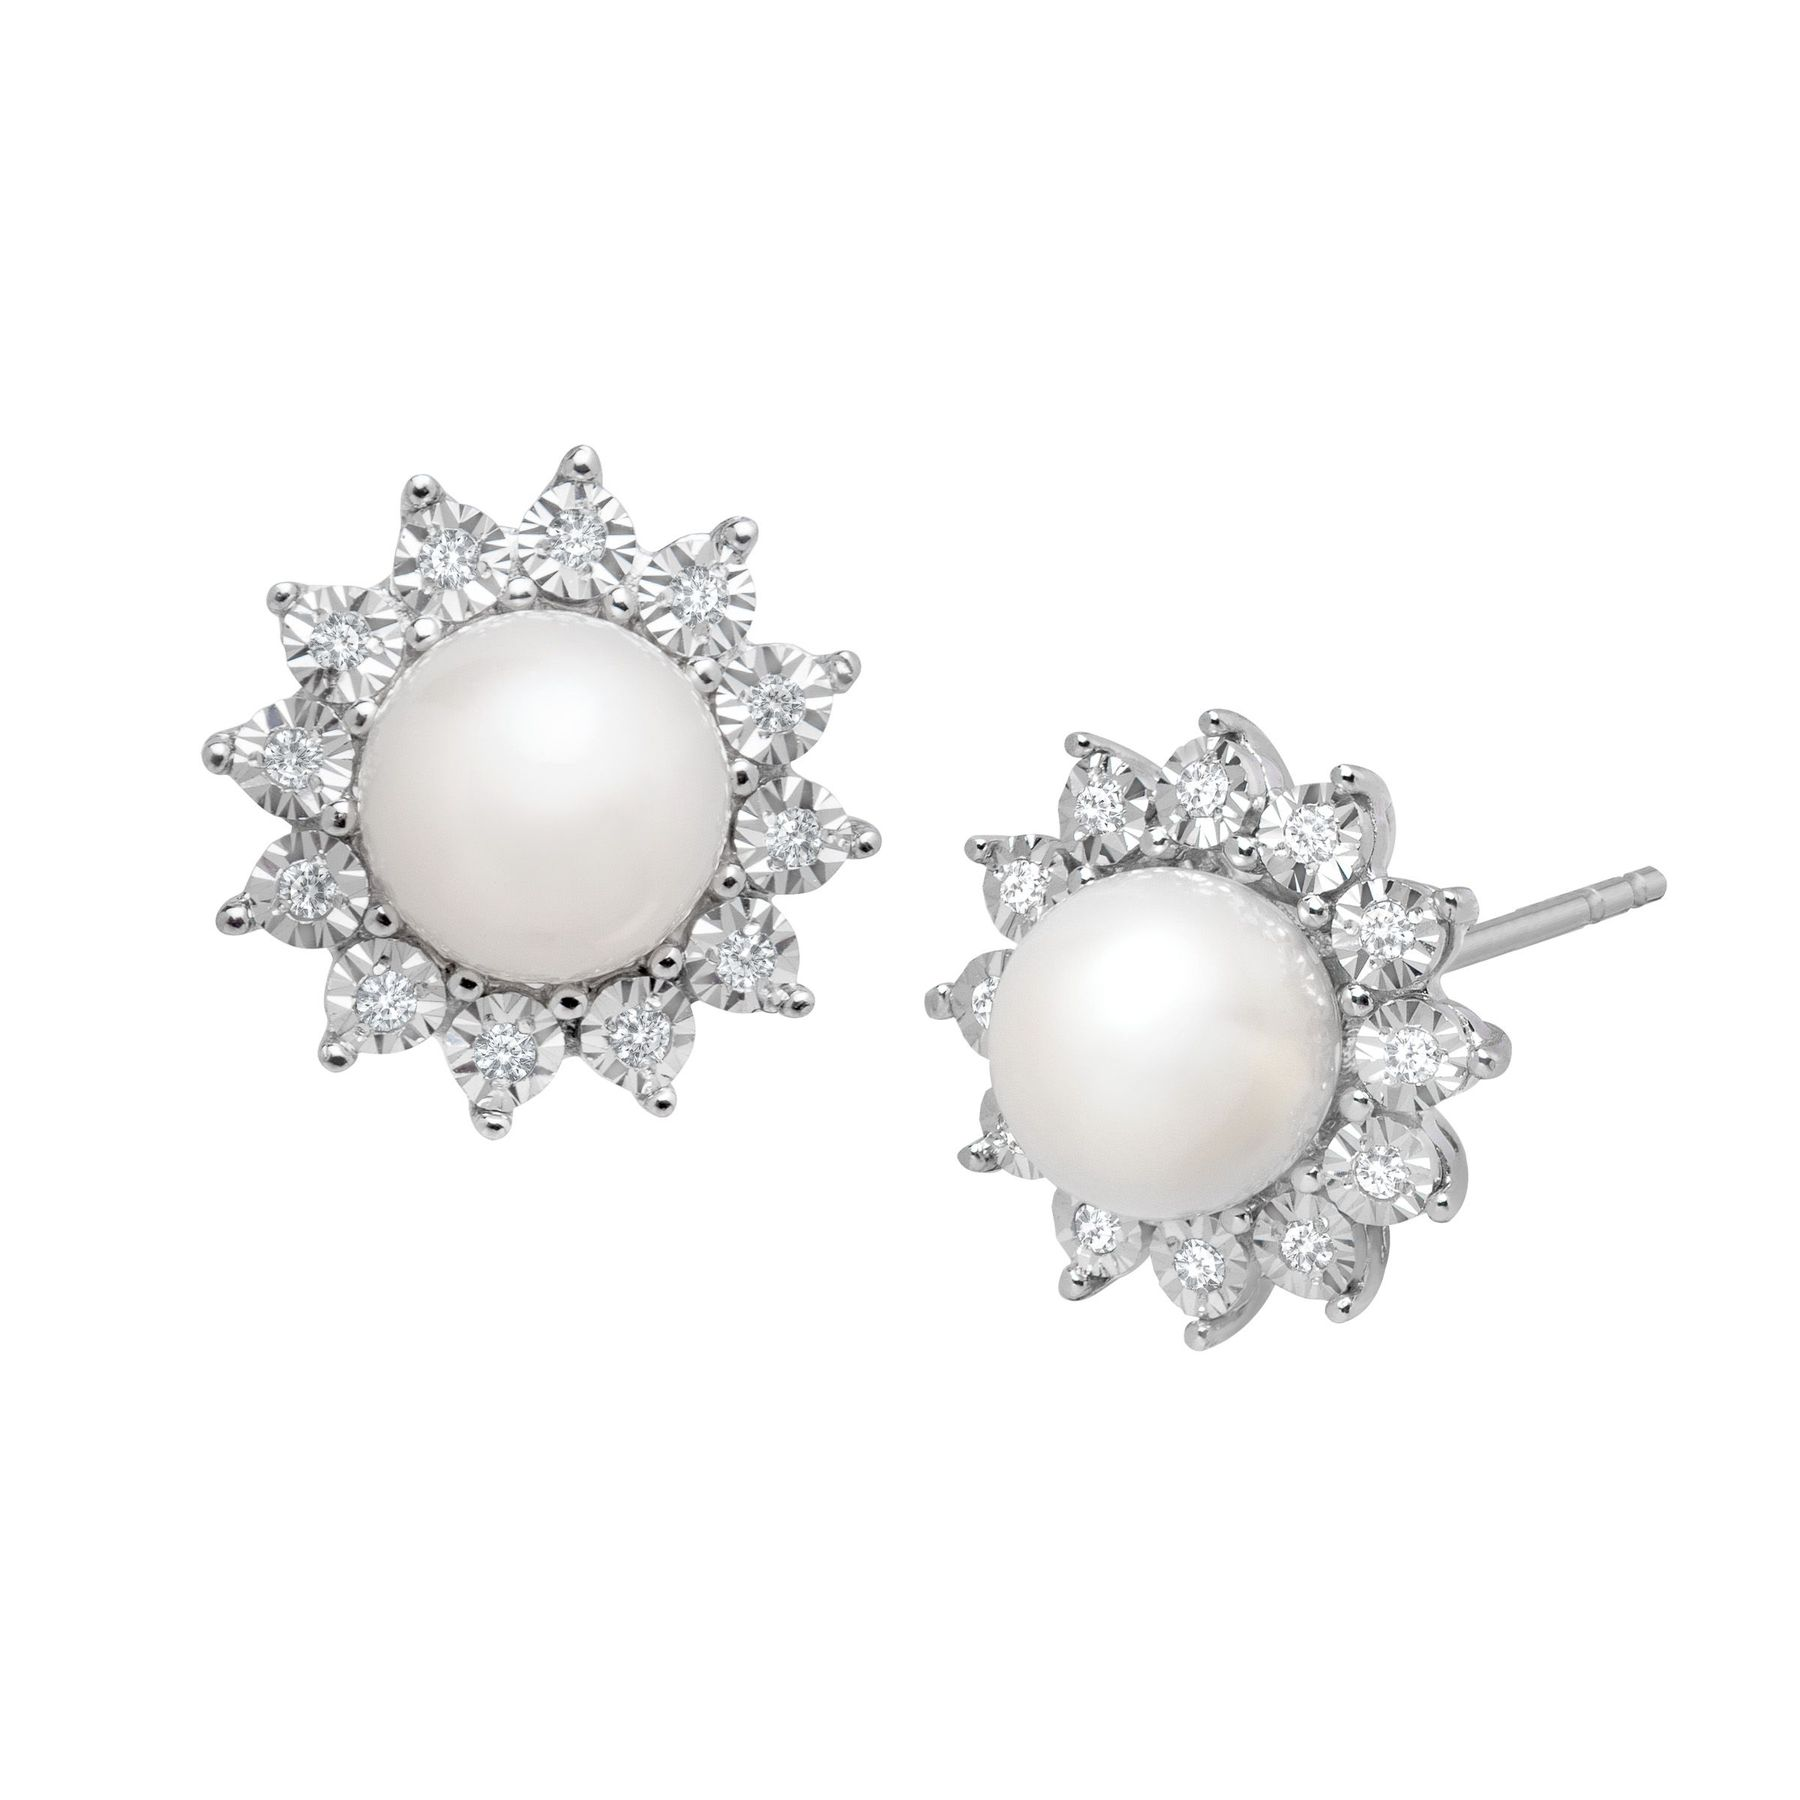 Pearl 1 8 Ct Diamond Stud Earrings